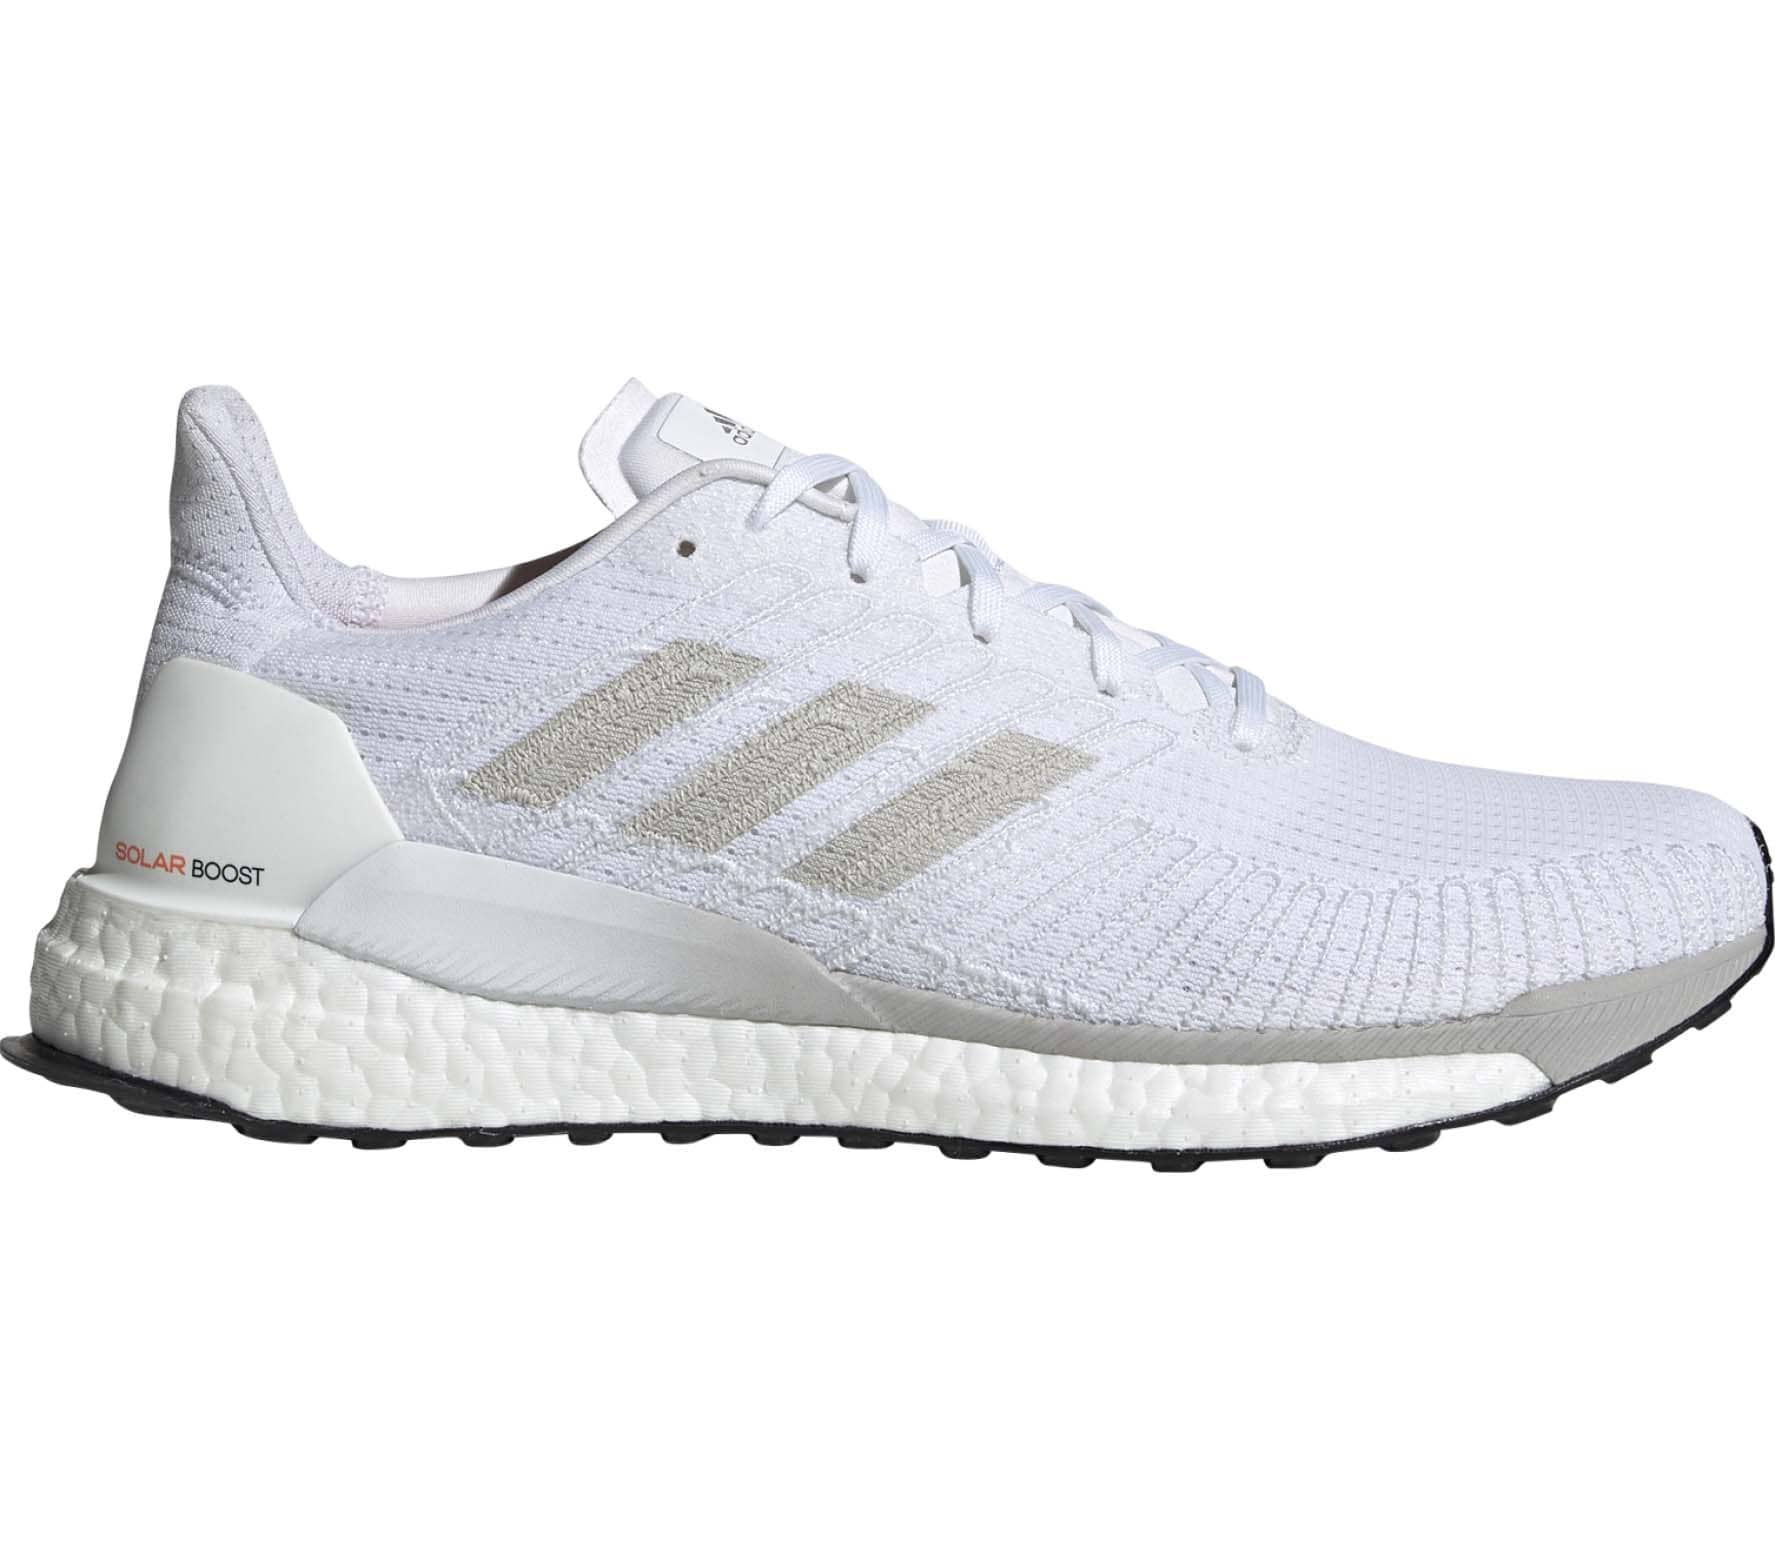 adidas Solarboost 19 Men Running Shoes  white